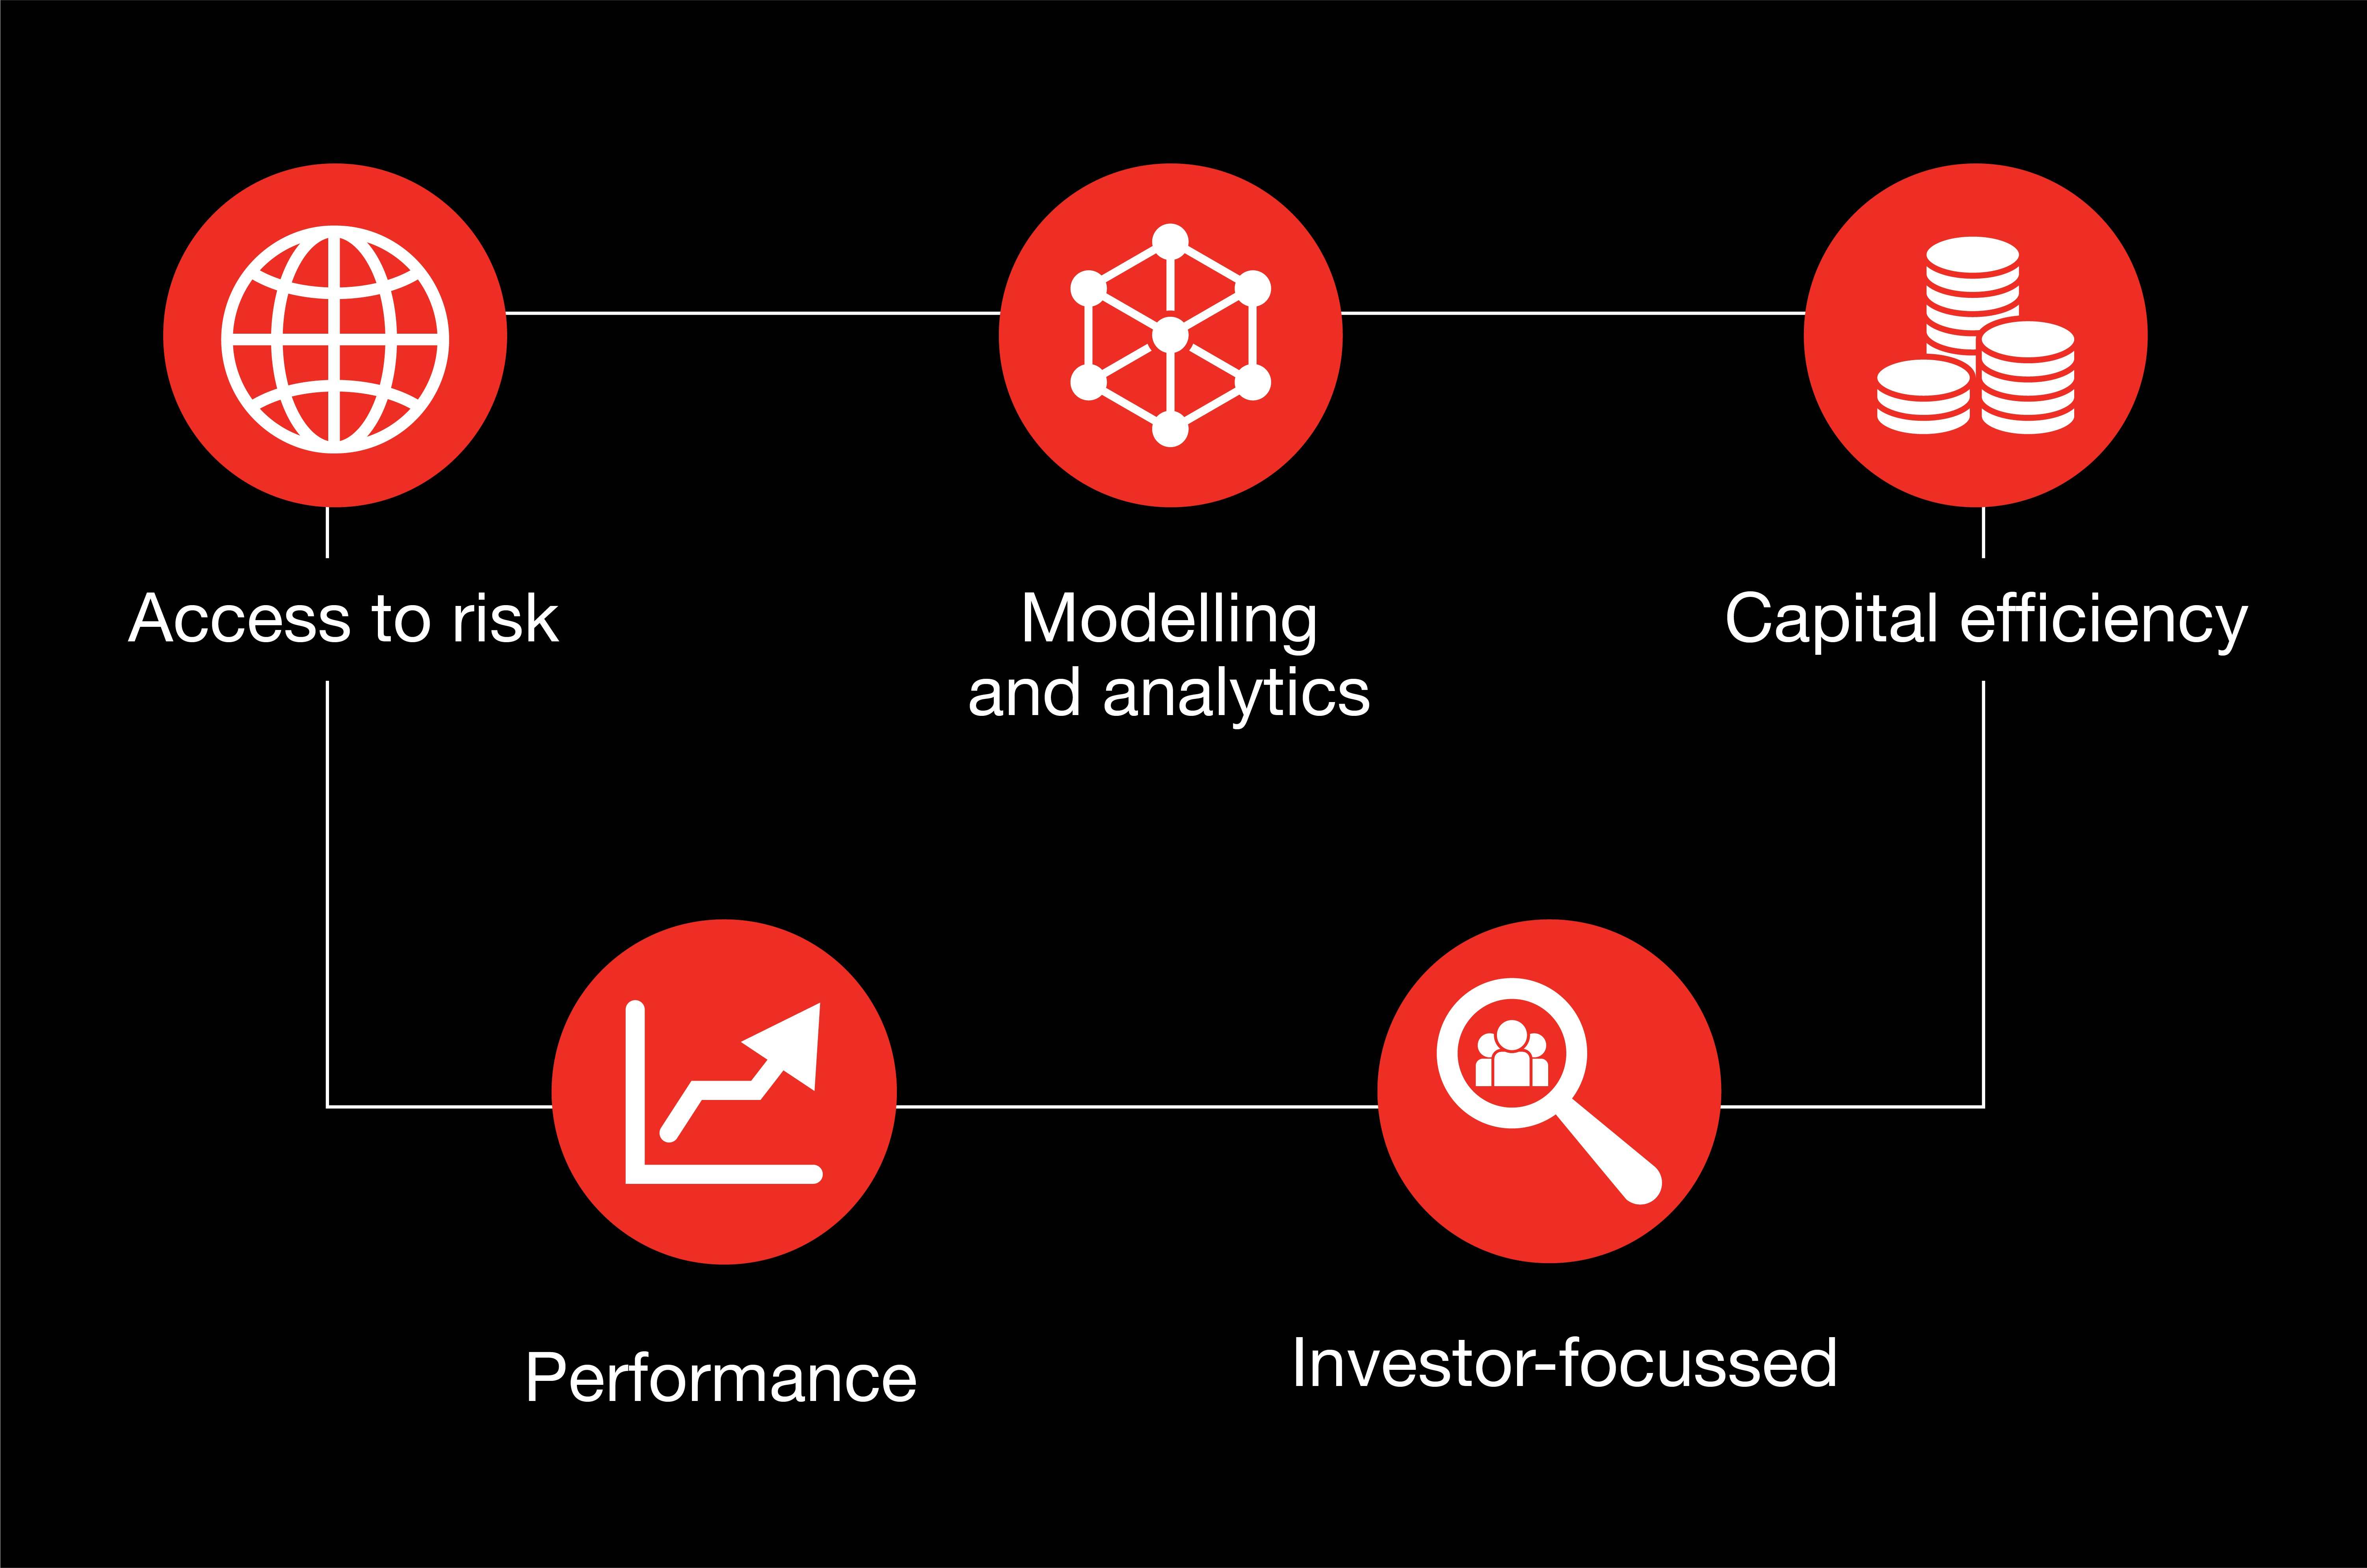 Why partner with Hiscox ILS